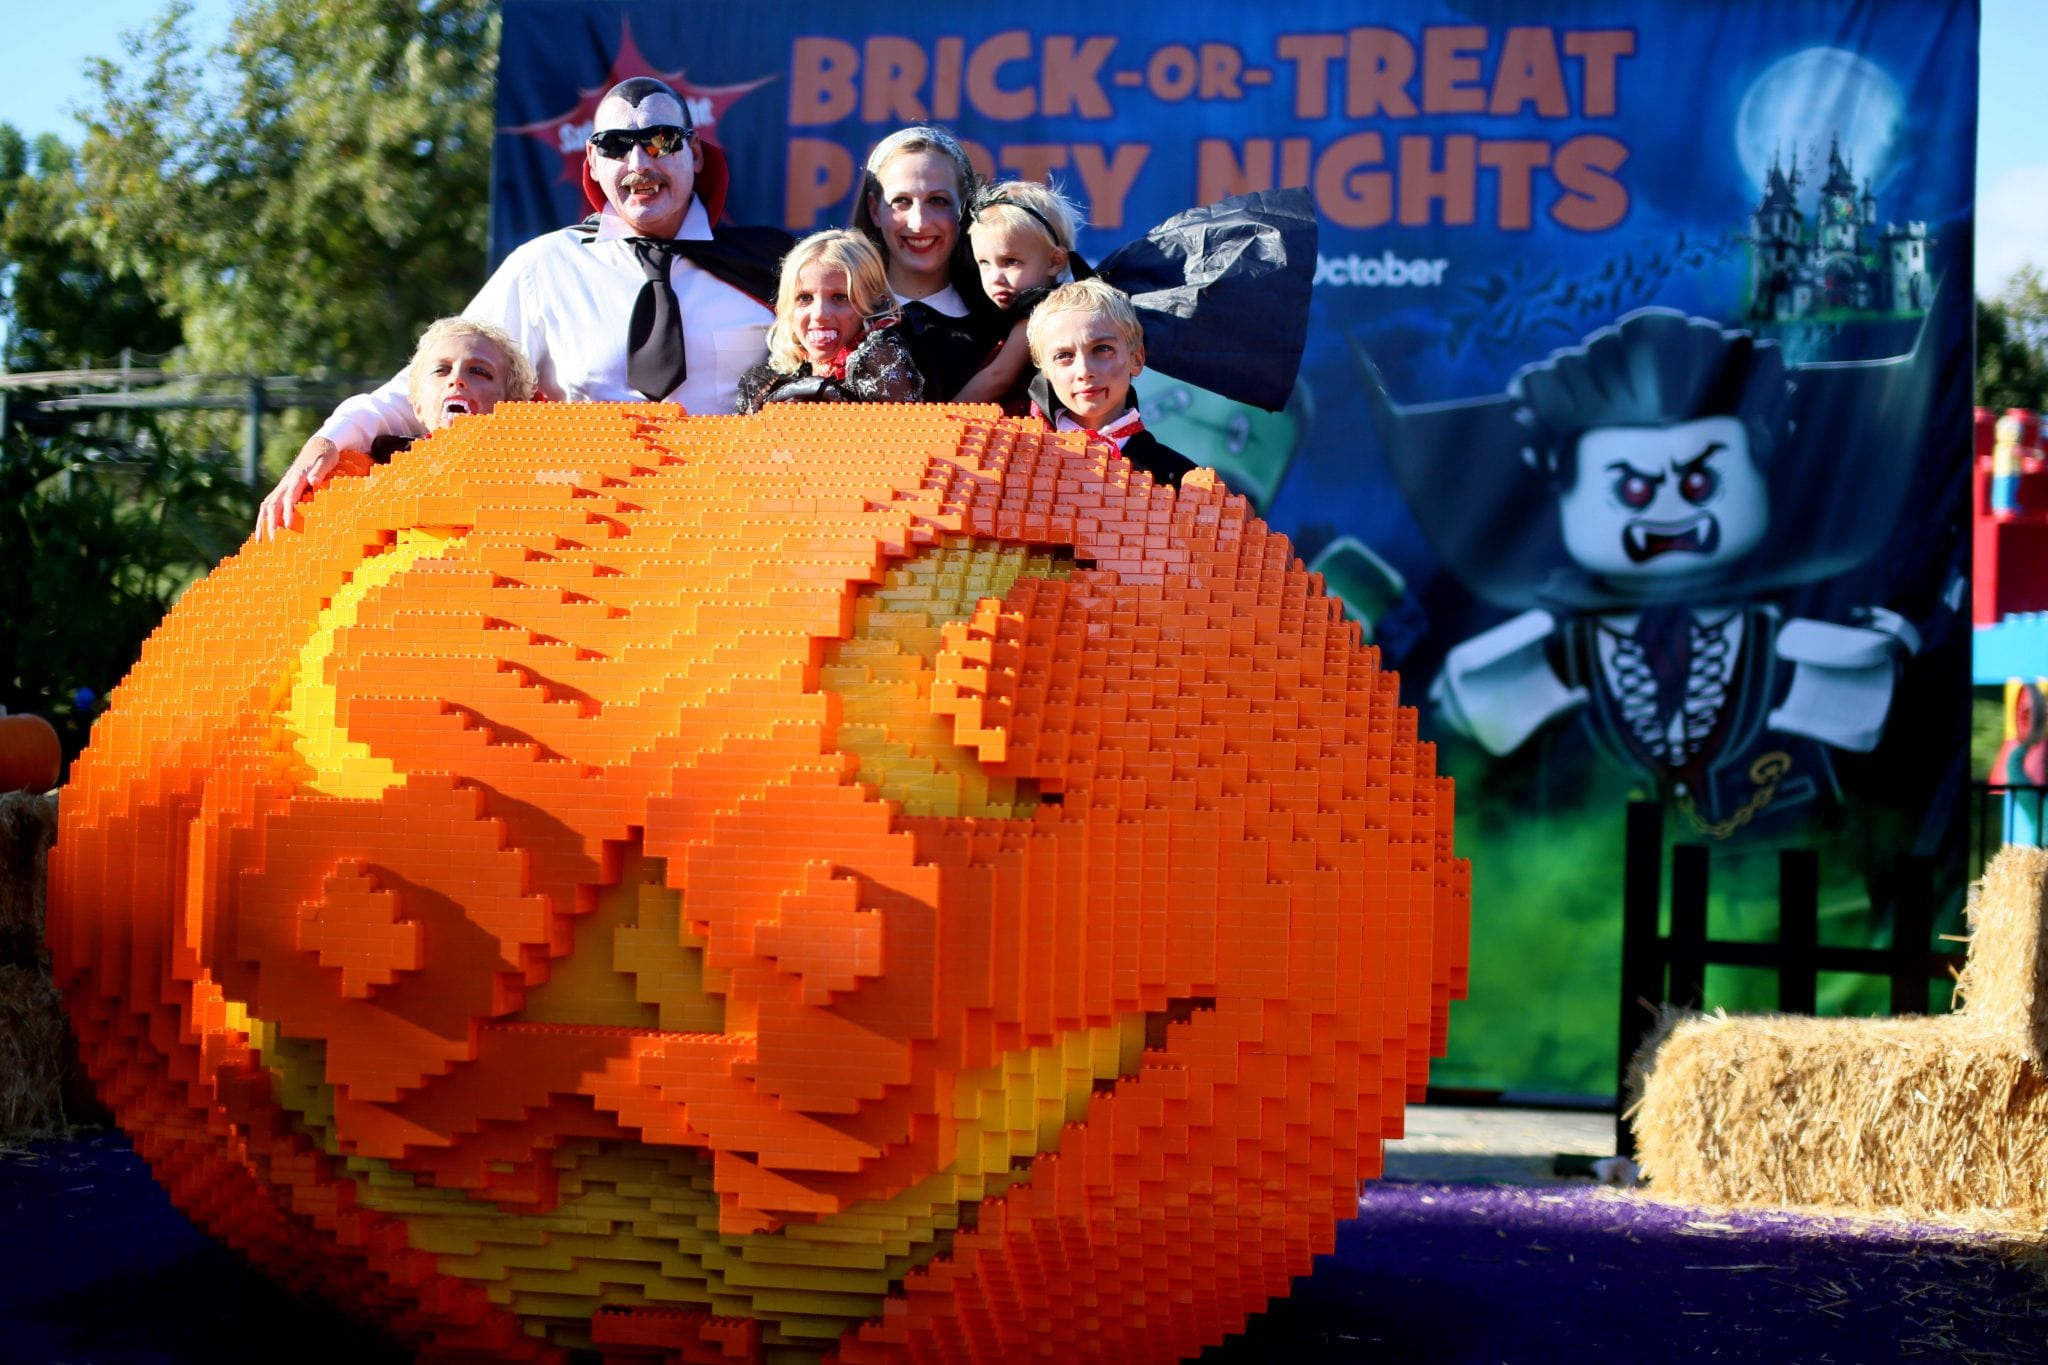 Los Angeles Events - Brick-or-Treat